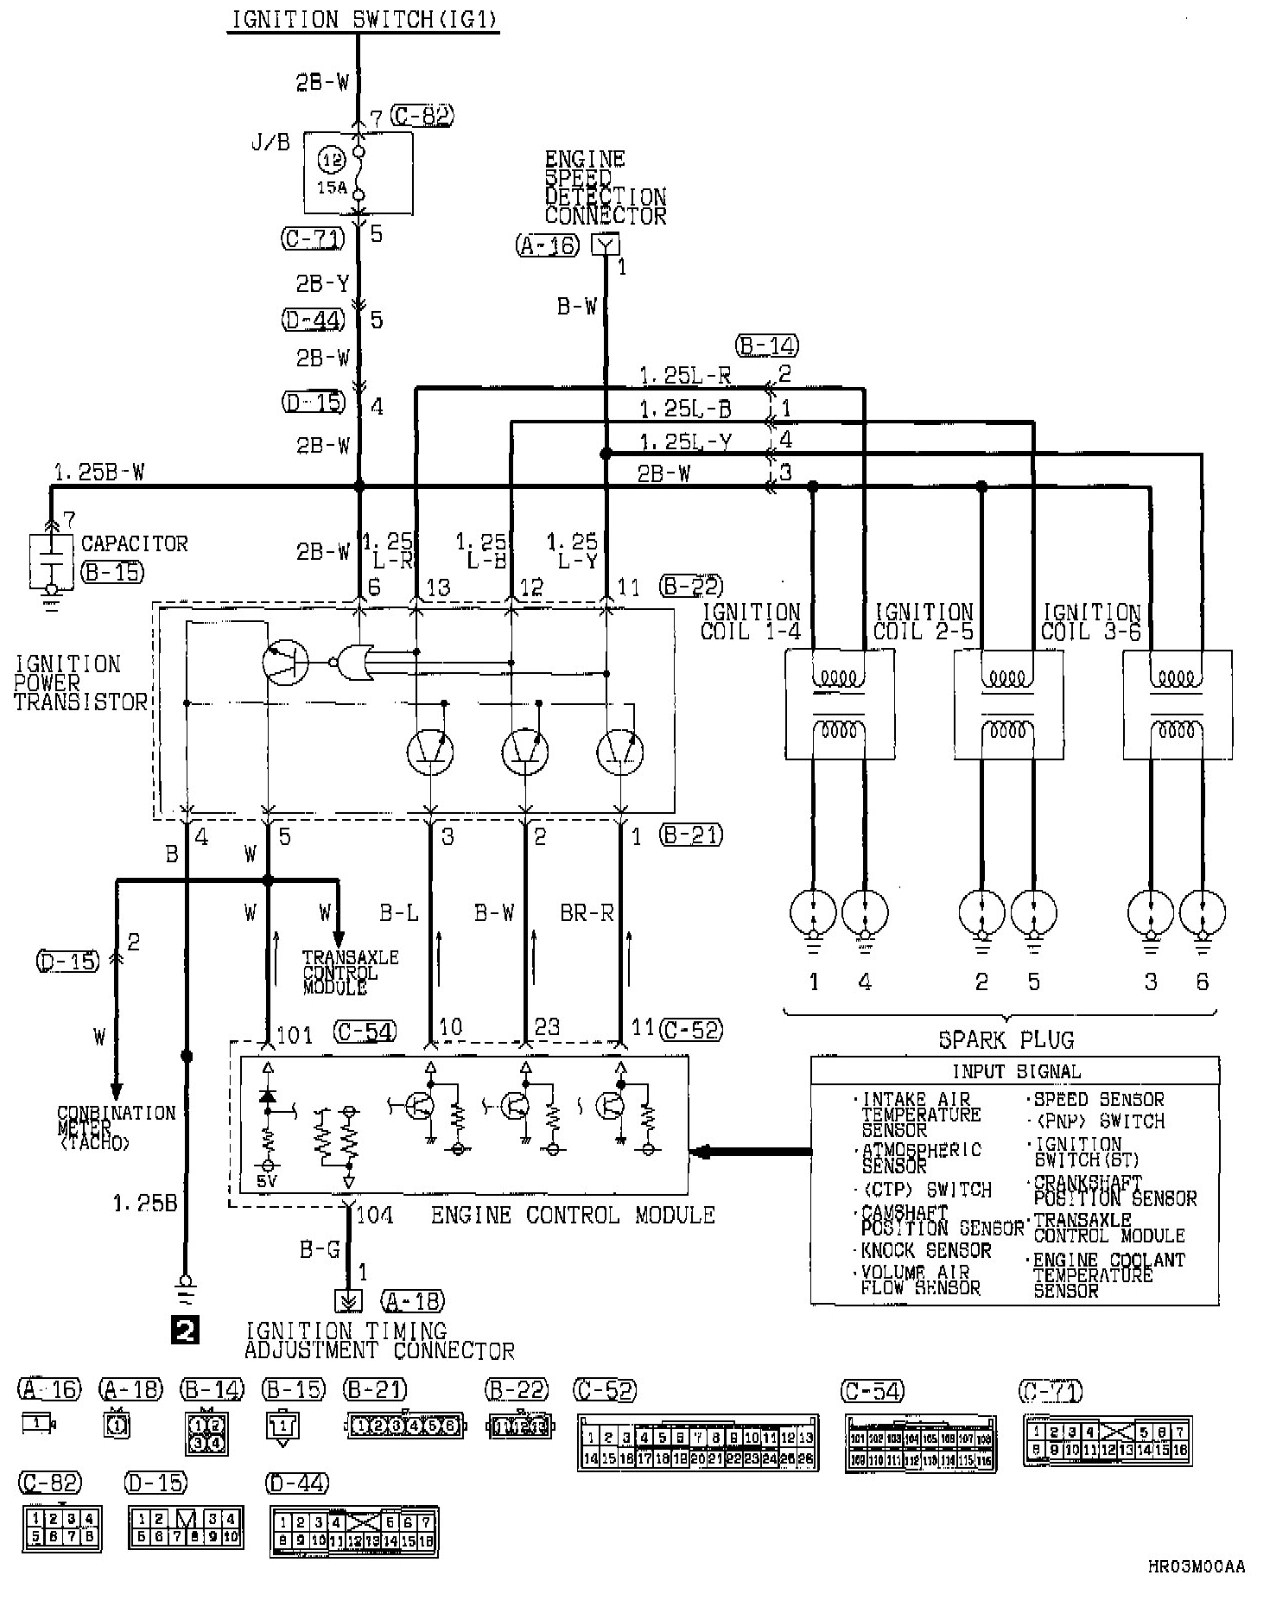 wiring diagram for 95 dodge stealth custom wiring diagram u2022 rh littlewaves co 1991 dodge stealth stereo wiring diagram